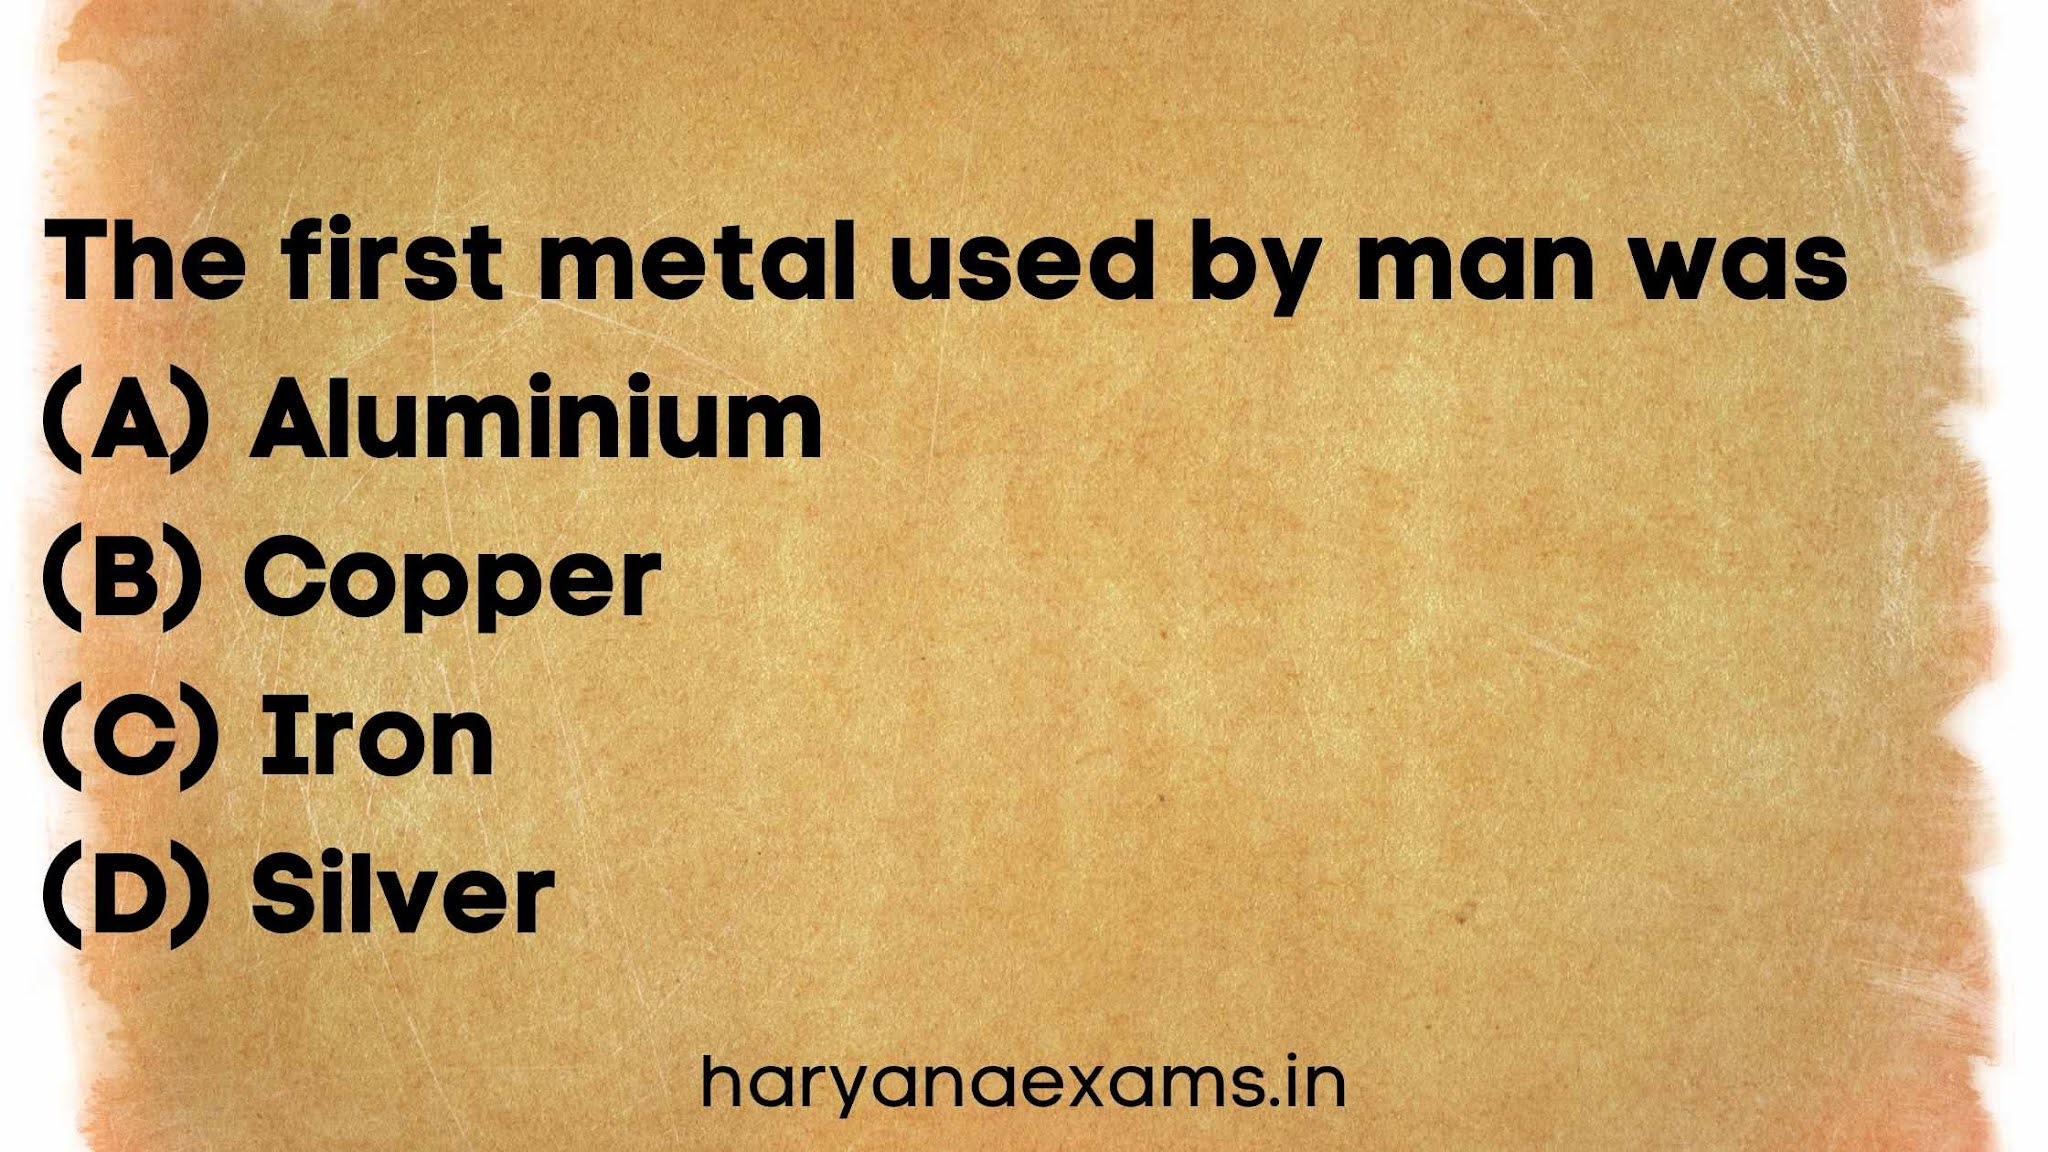 The first metal used by man was   (A) Aluminium   (B) Copper   (C) Iron   (D) Silver